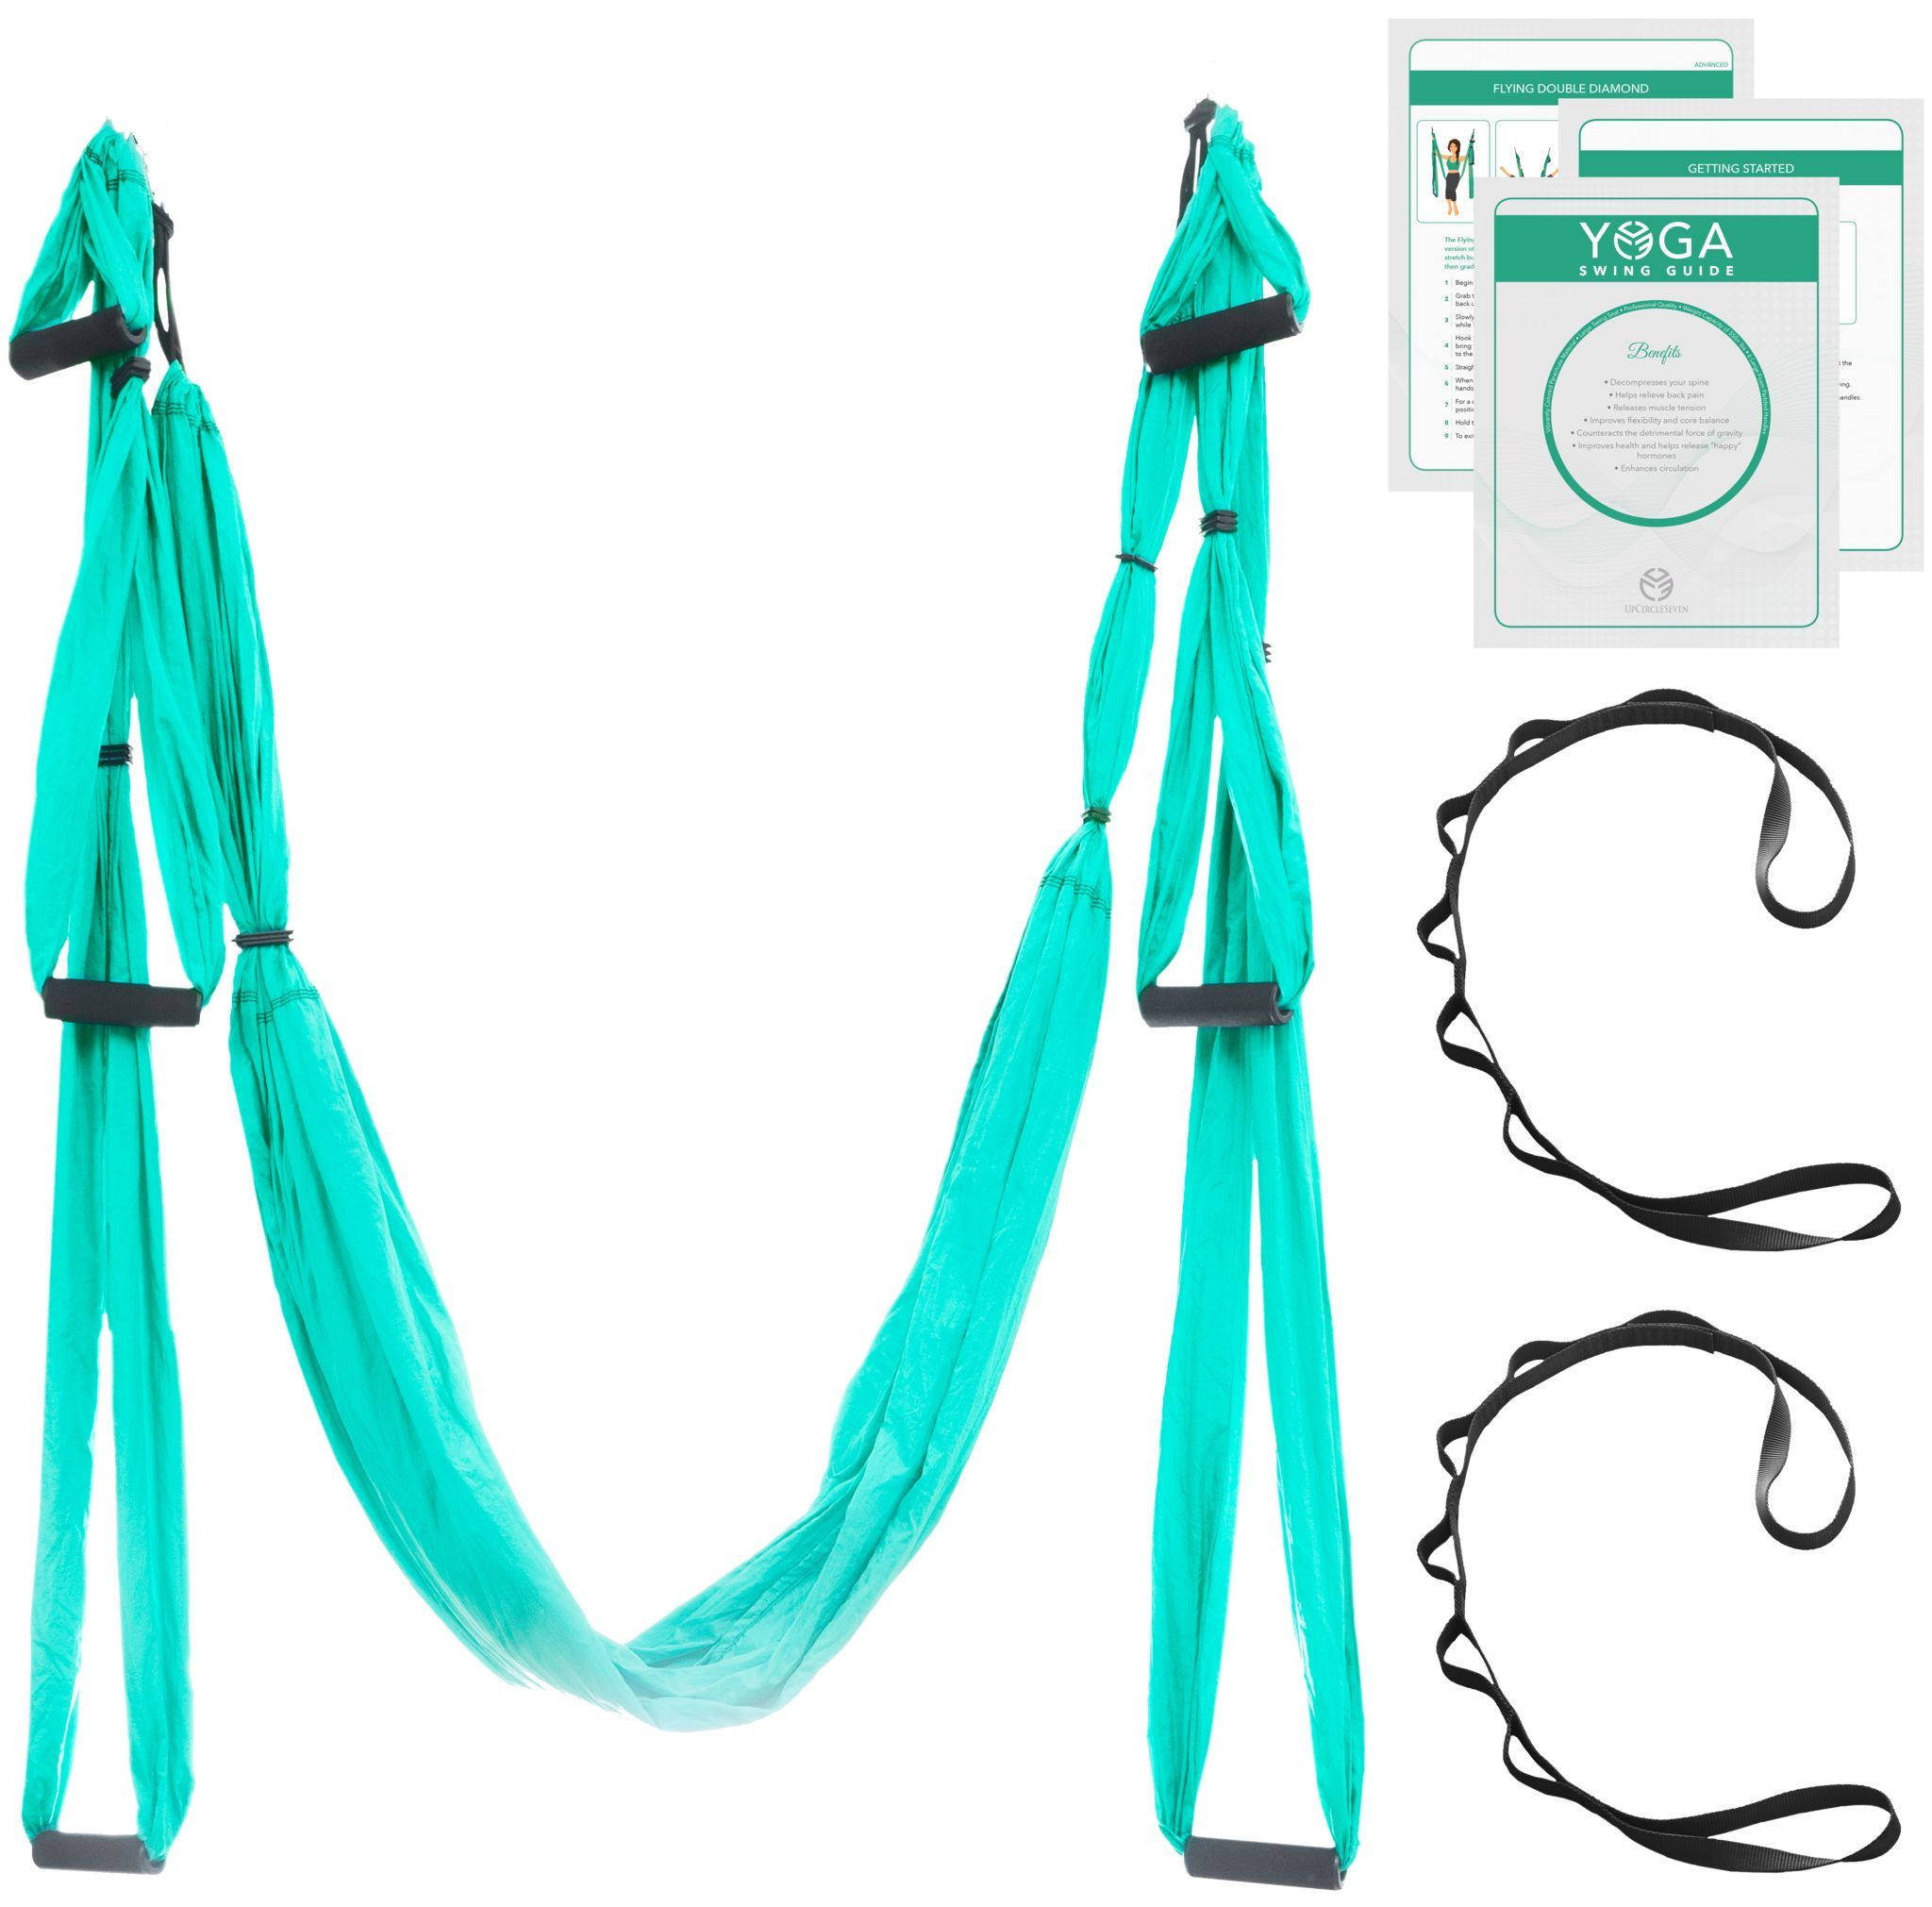 Yoga swing products